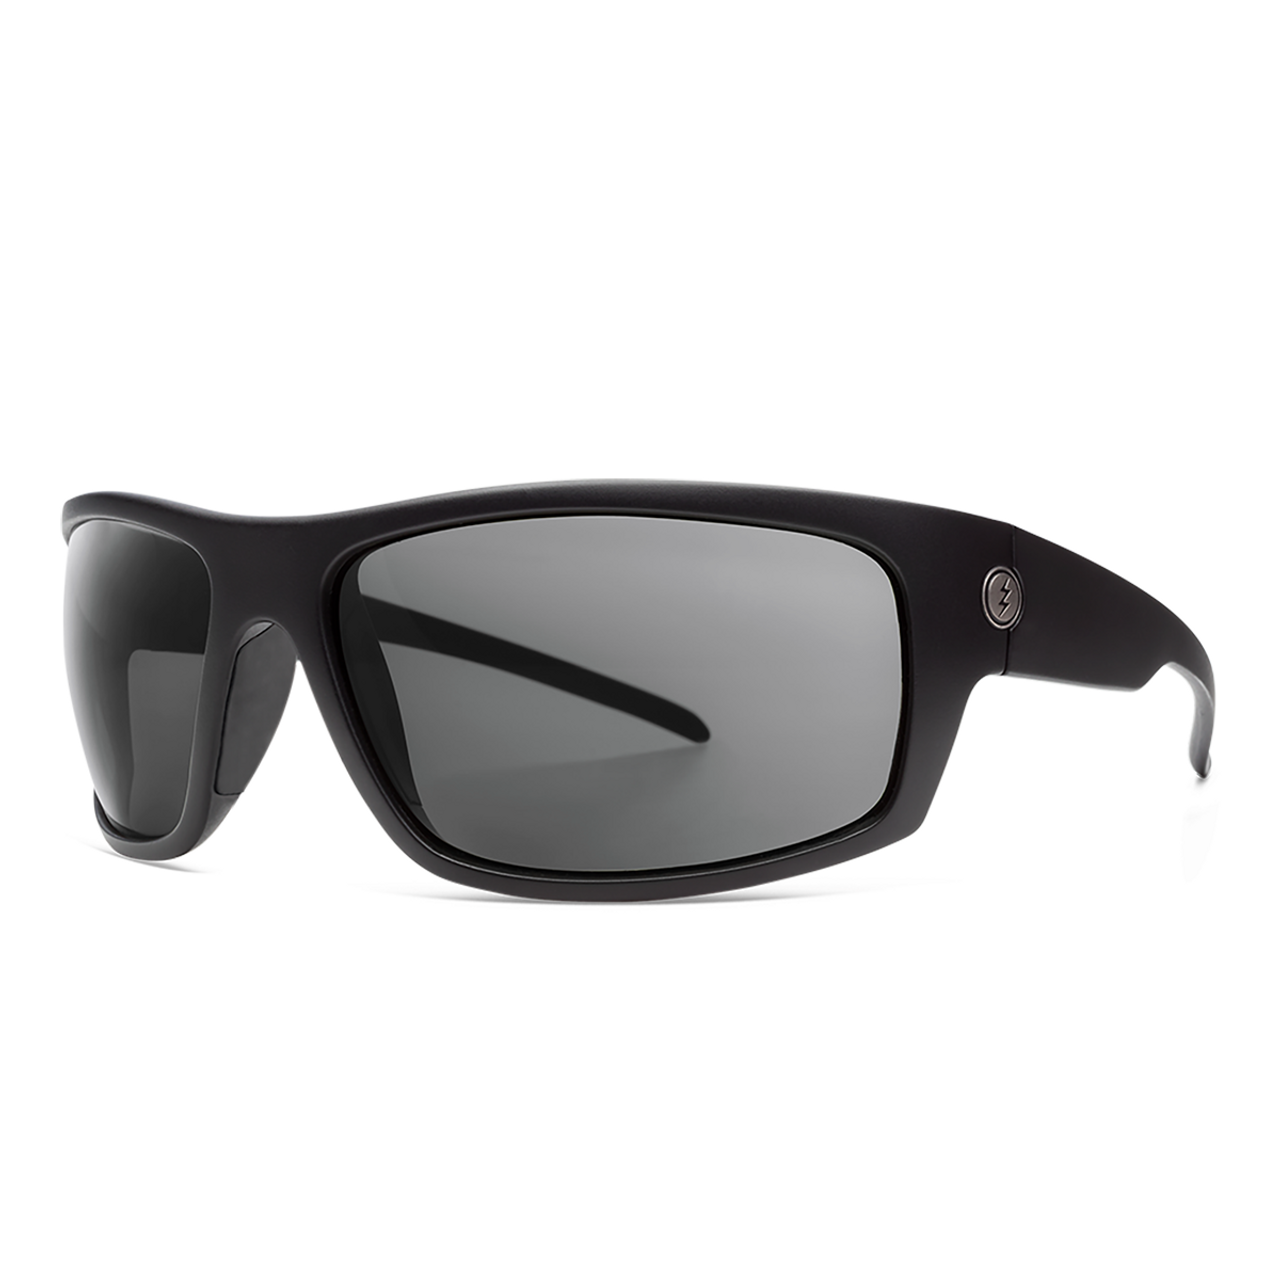 eecca0b6d9814 Tech One XL-S - Matte Black - Ohm Polar Grey - Val Surf